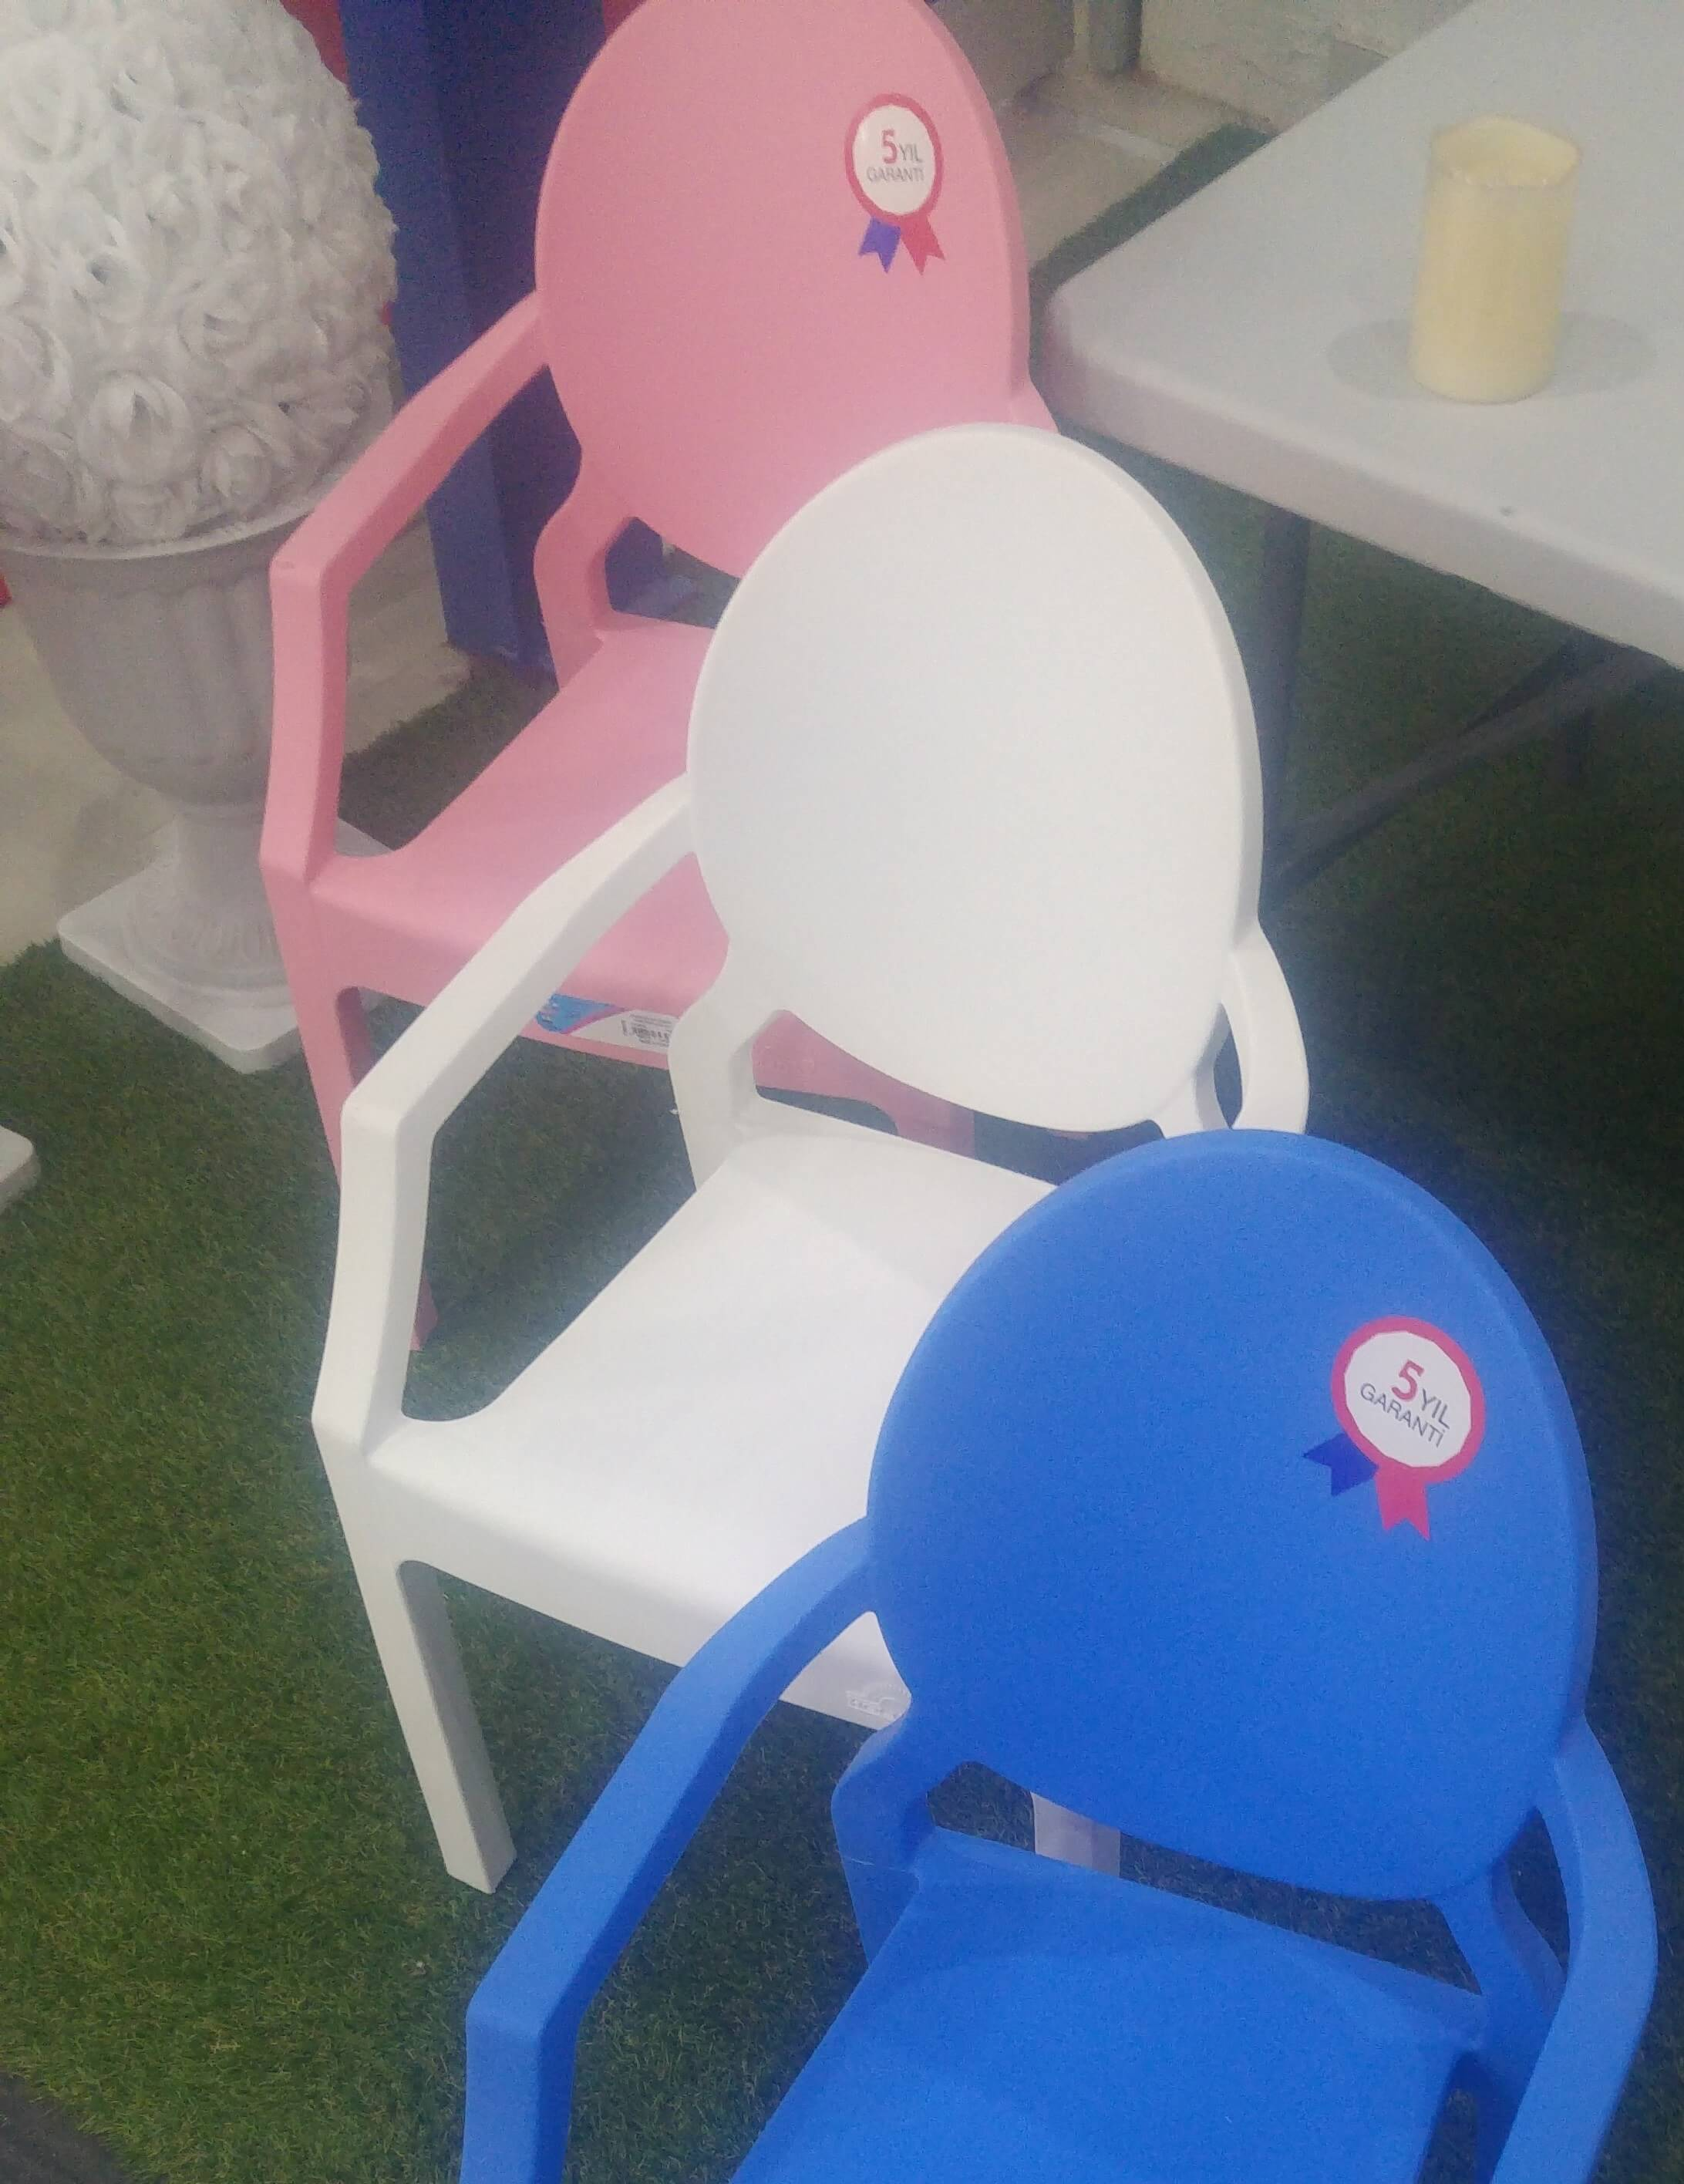 ghost chairs for kids kiddies ghost chairs for sale sa decor